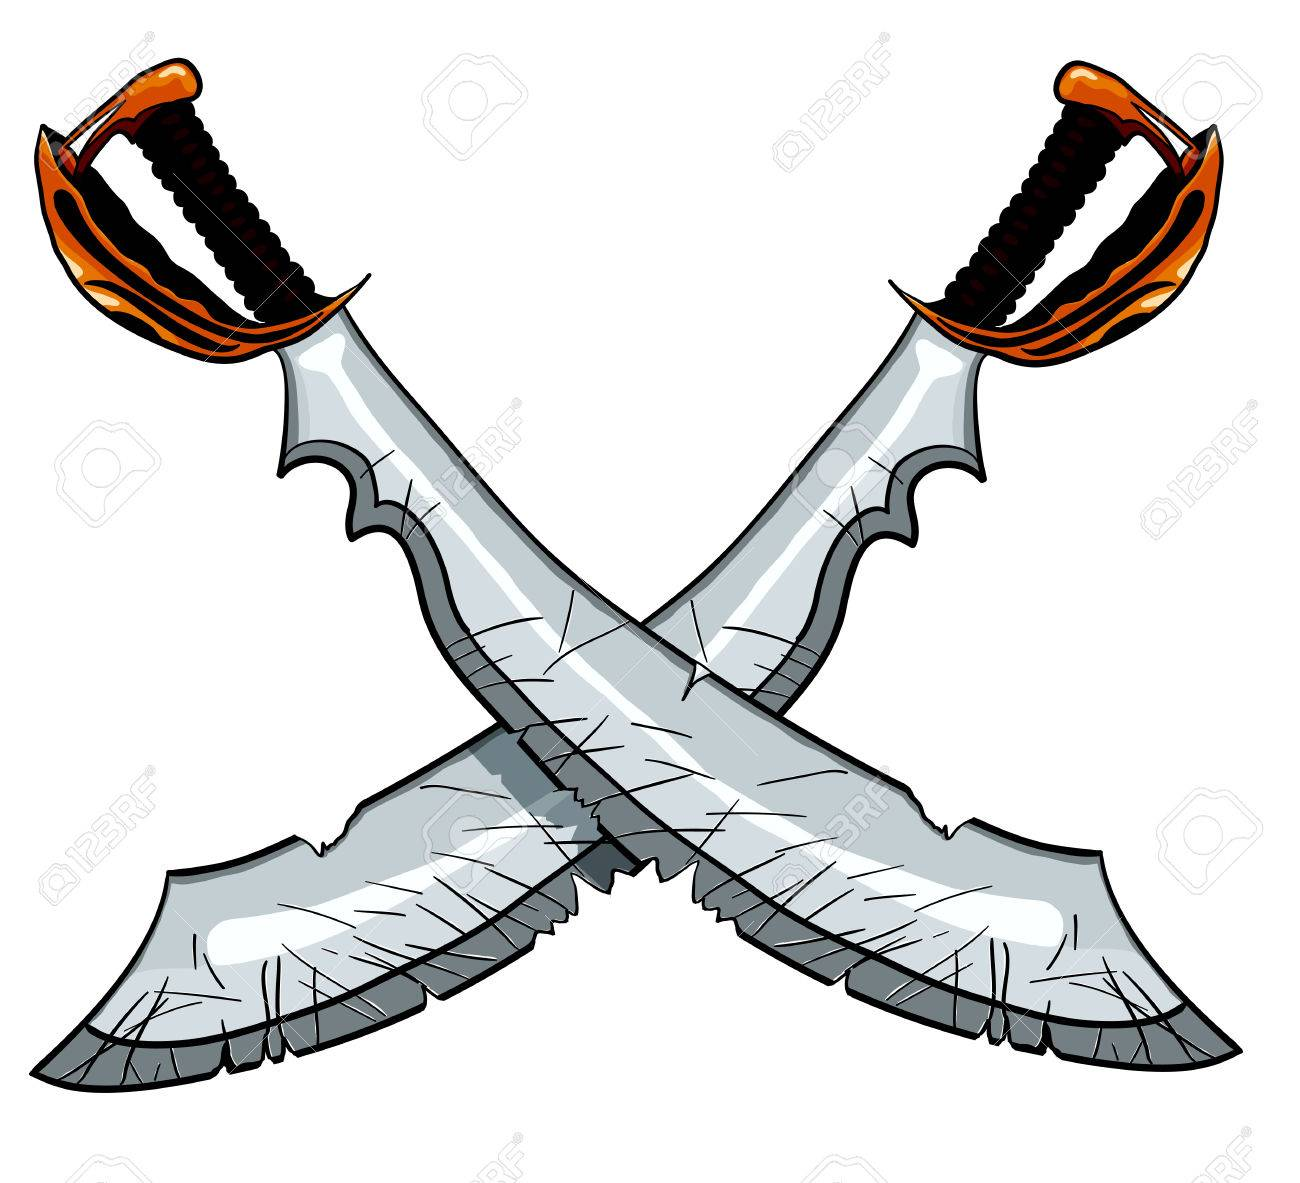 crossed cutlass pirate sword vector illustration for tattoo or